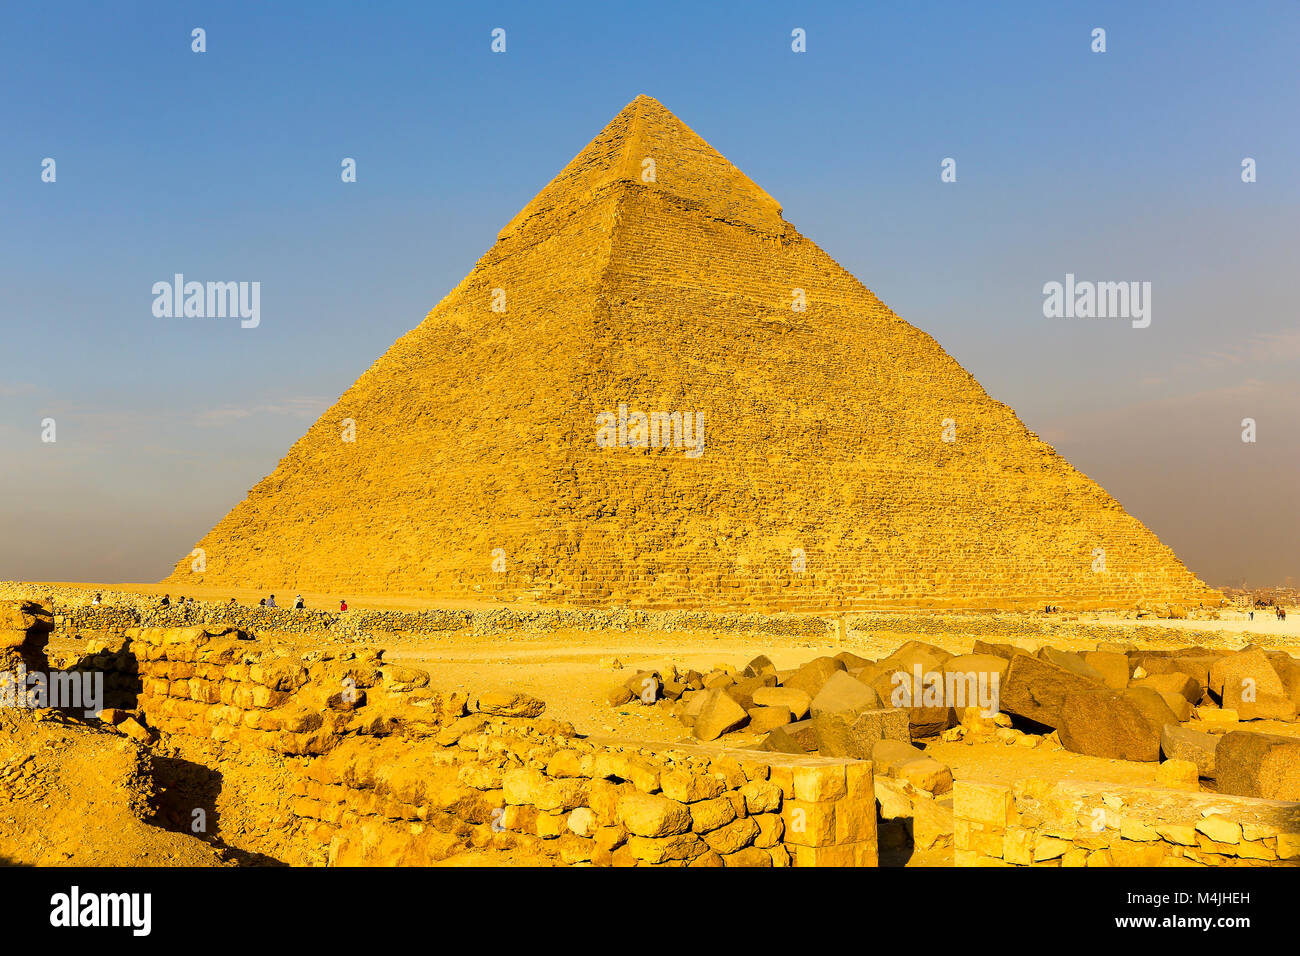 the-great-pyramid-of-giza-pyramids-giza-egypt-north-africa-M4JHEH.jpg